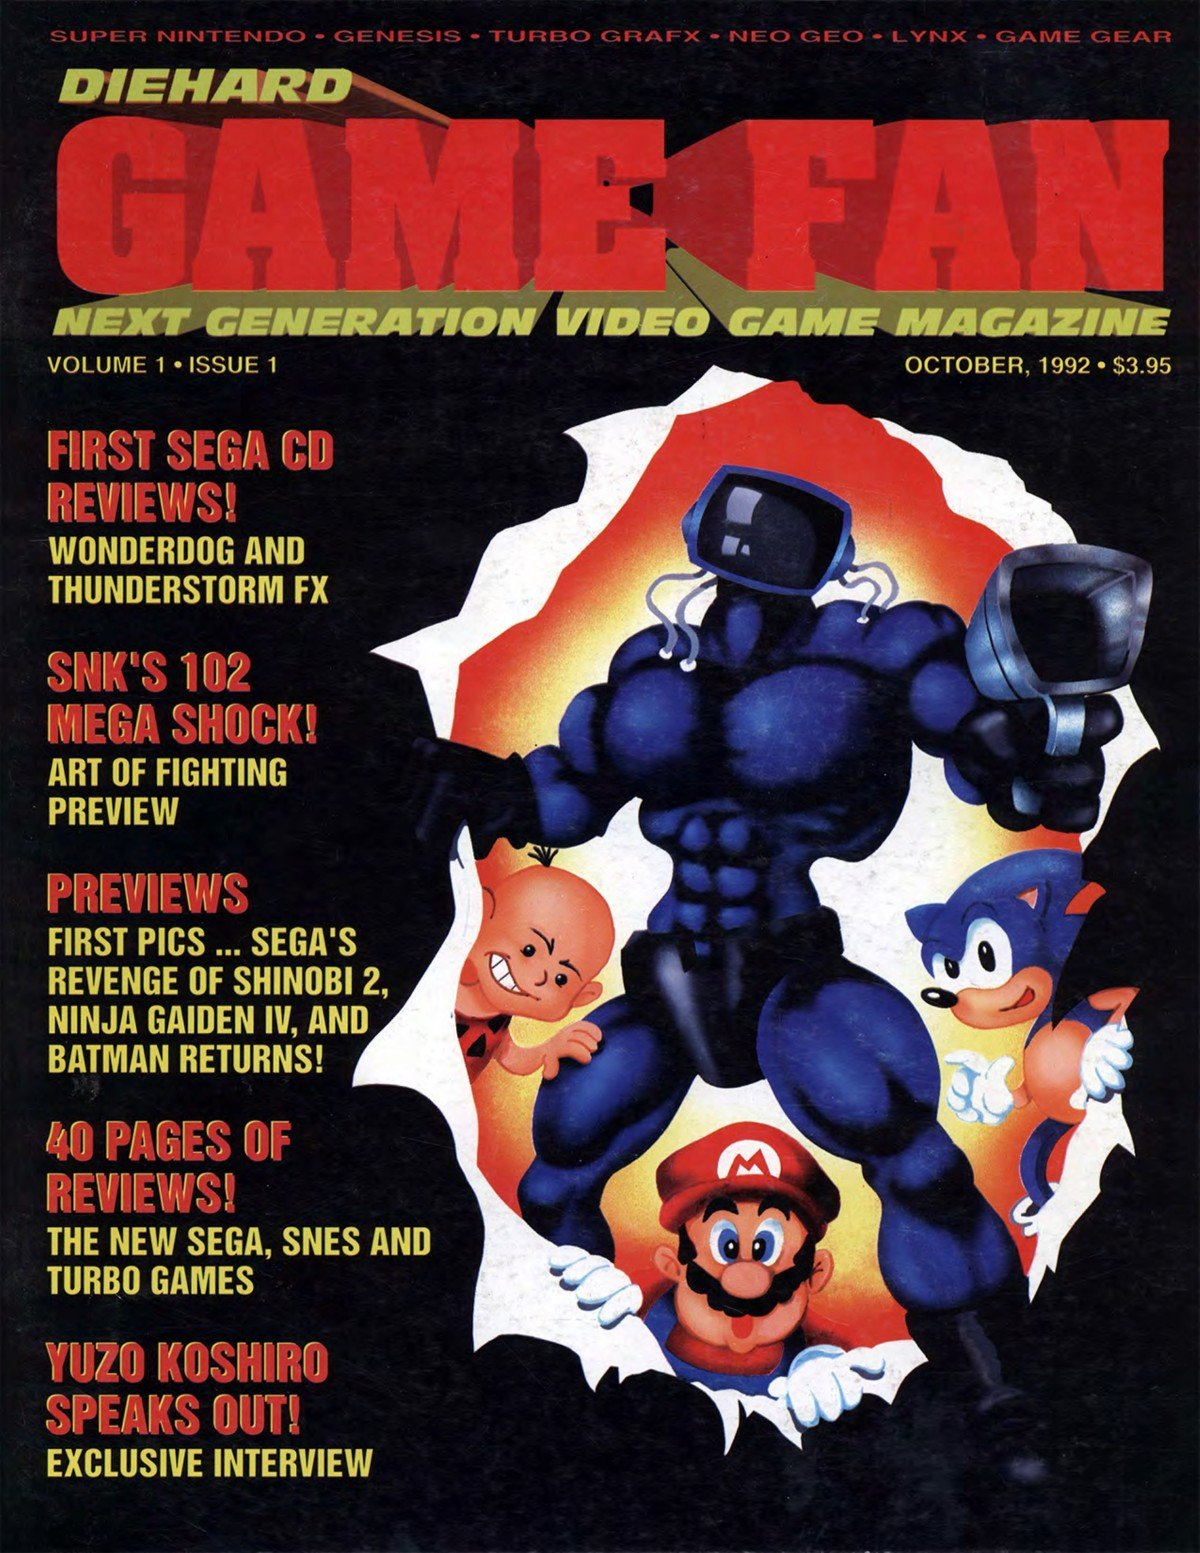 Diehard GameFan Issue 01 October 1992 (Volume 1 Issue 1)